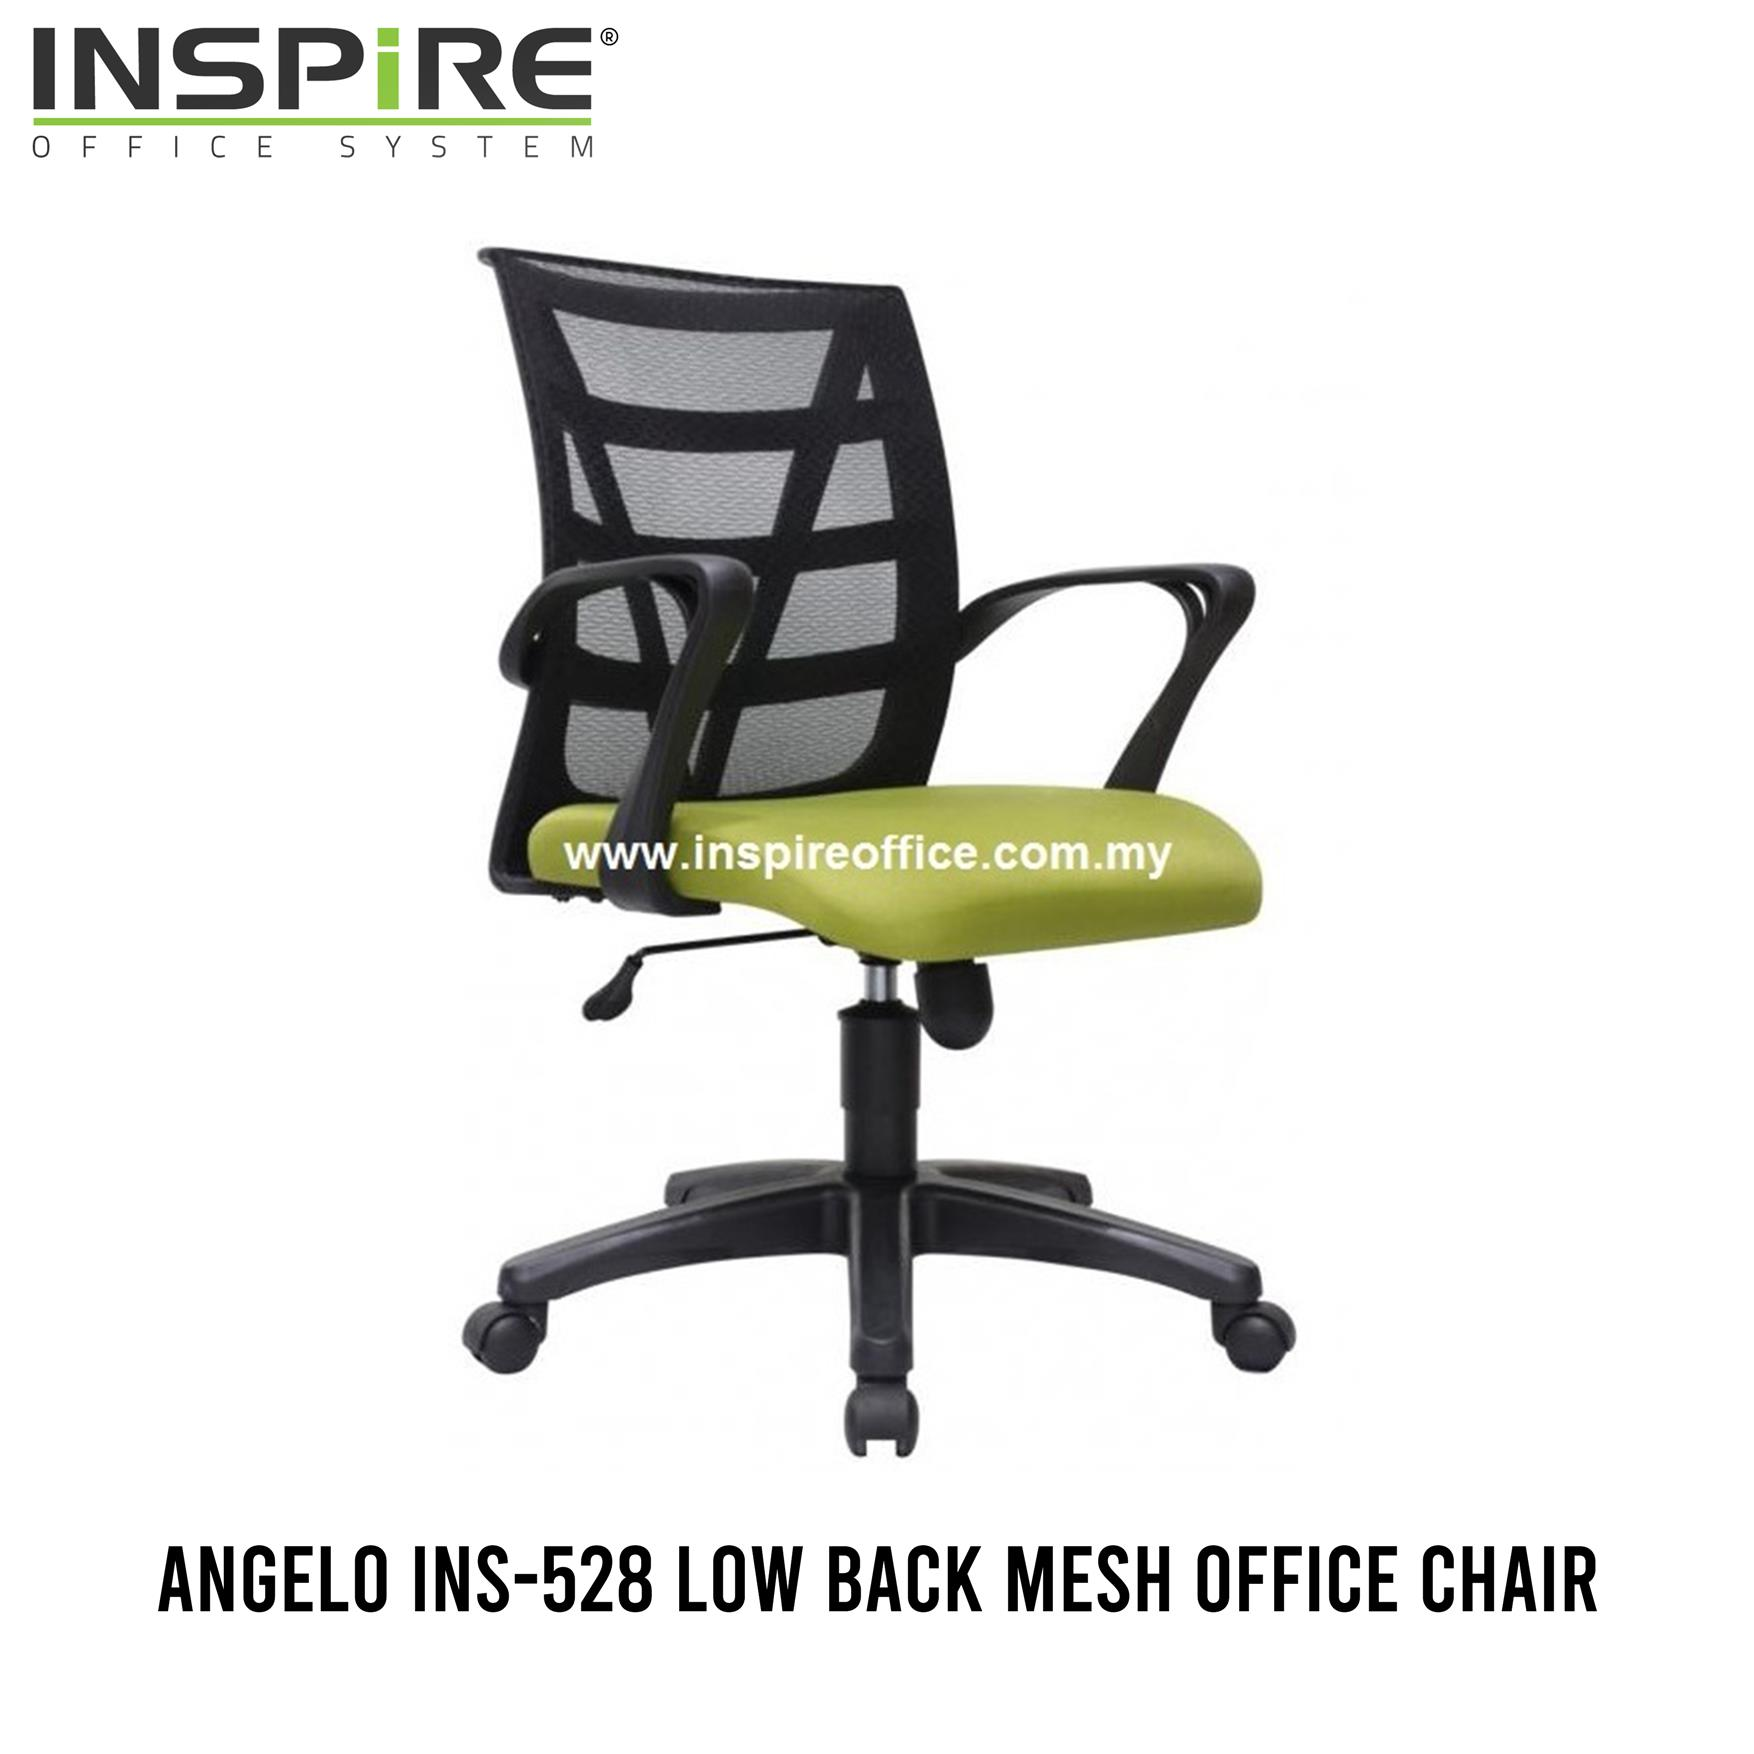 ANGELO INS-528 Low Back Mesh Office Chair